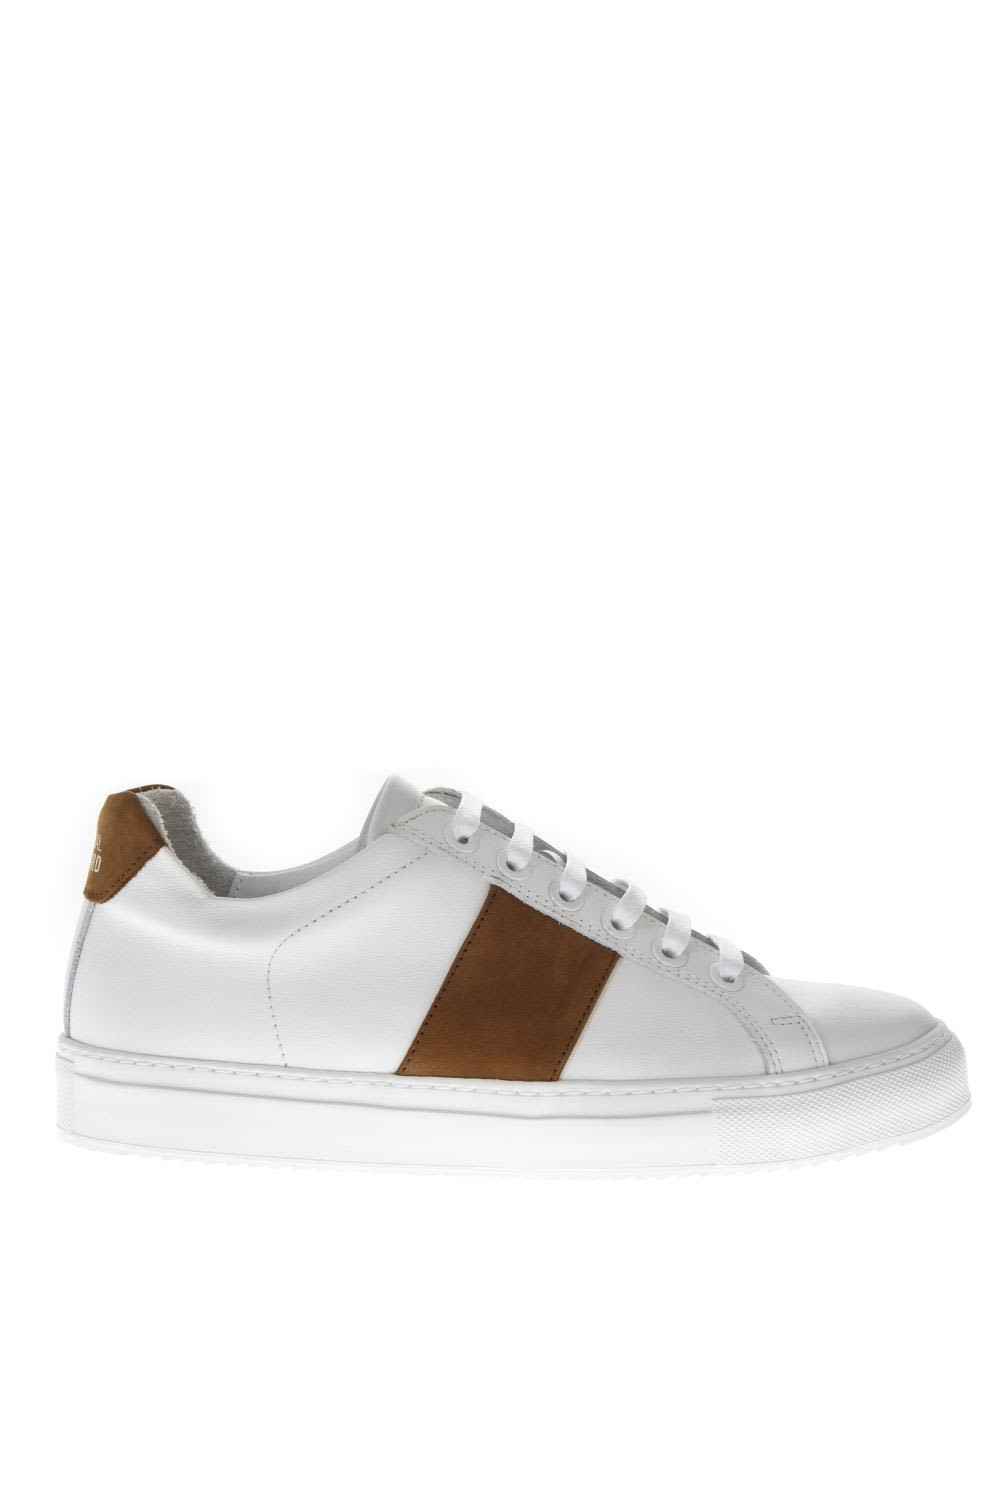 NATIONAL STANDARD 4 Edition White Leather Sneakers in Black